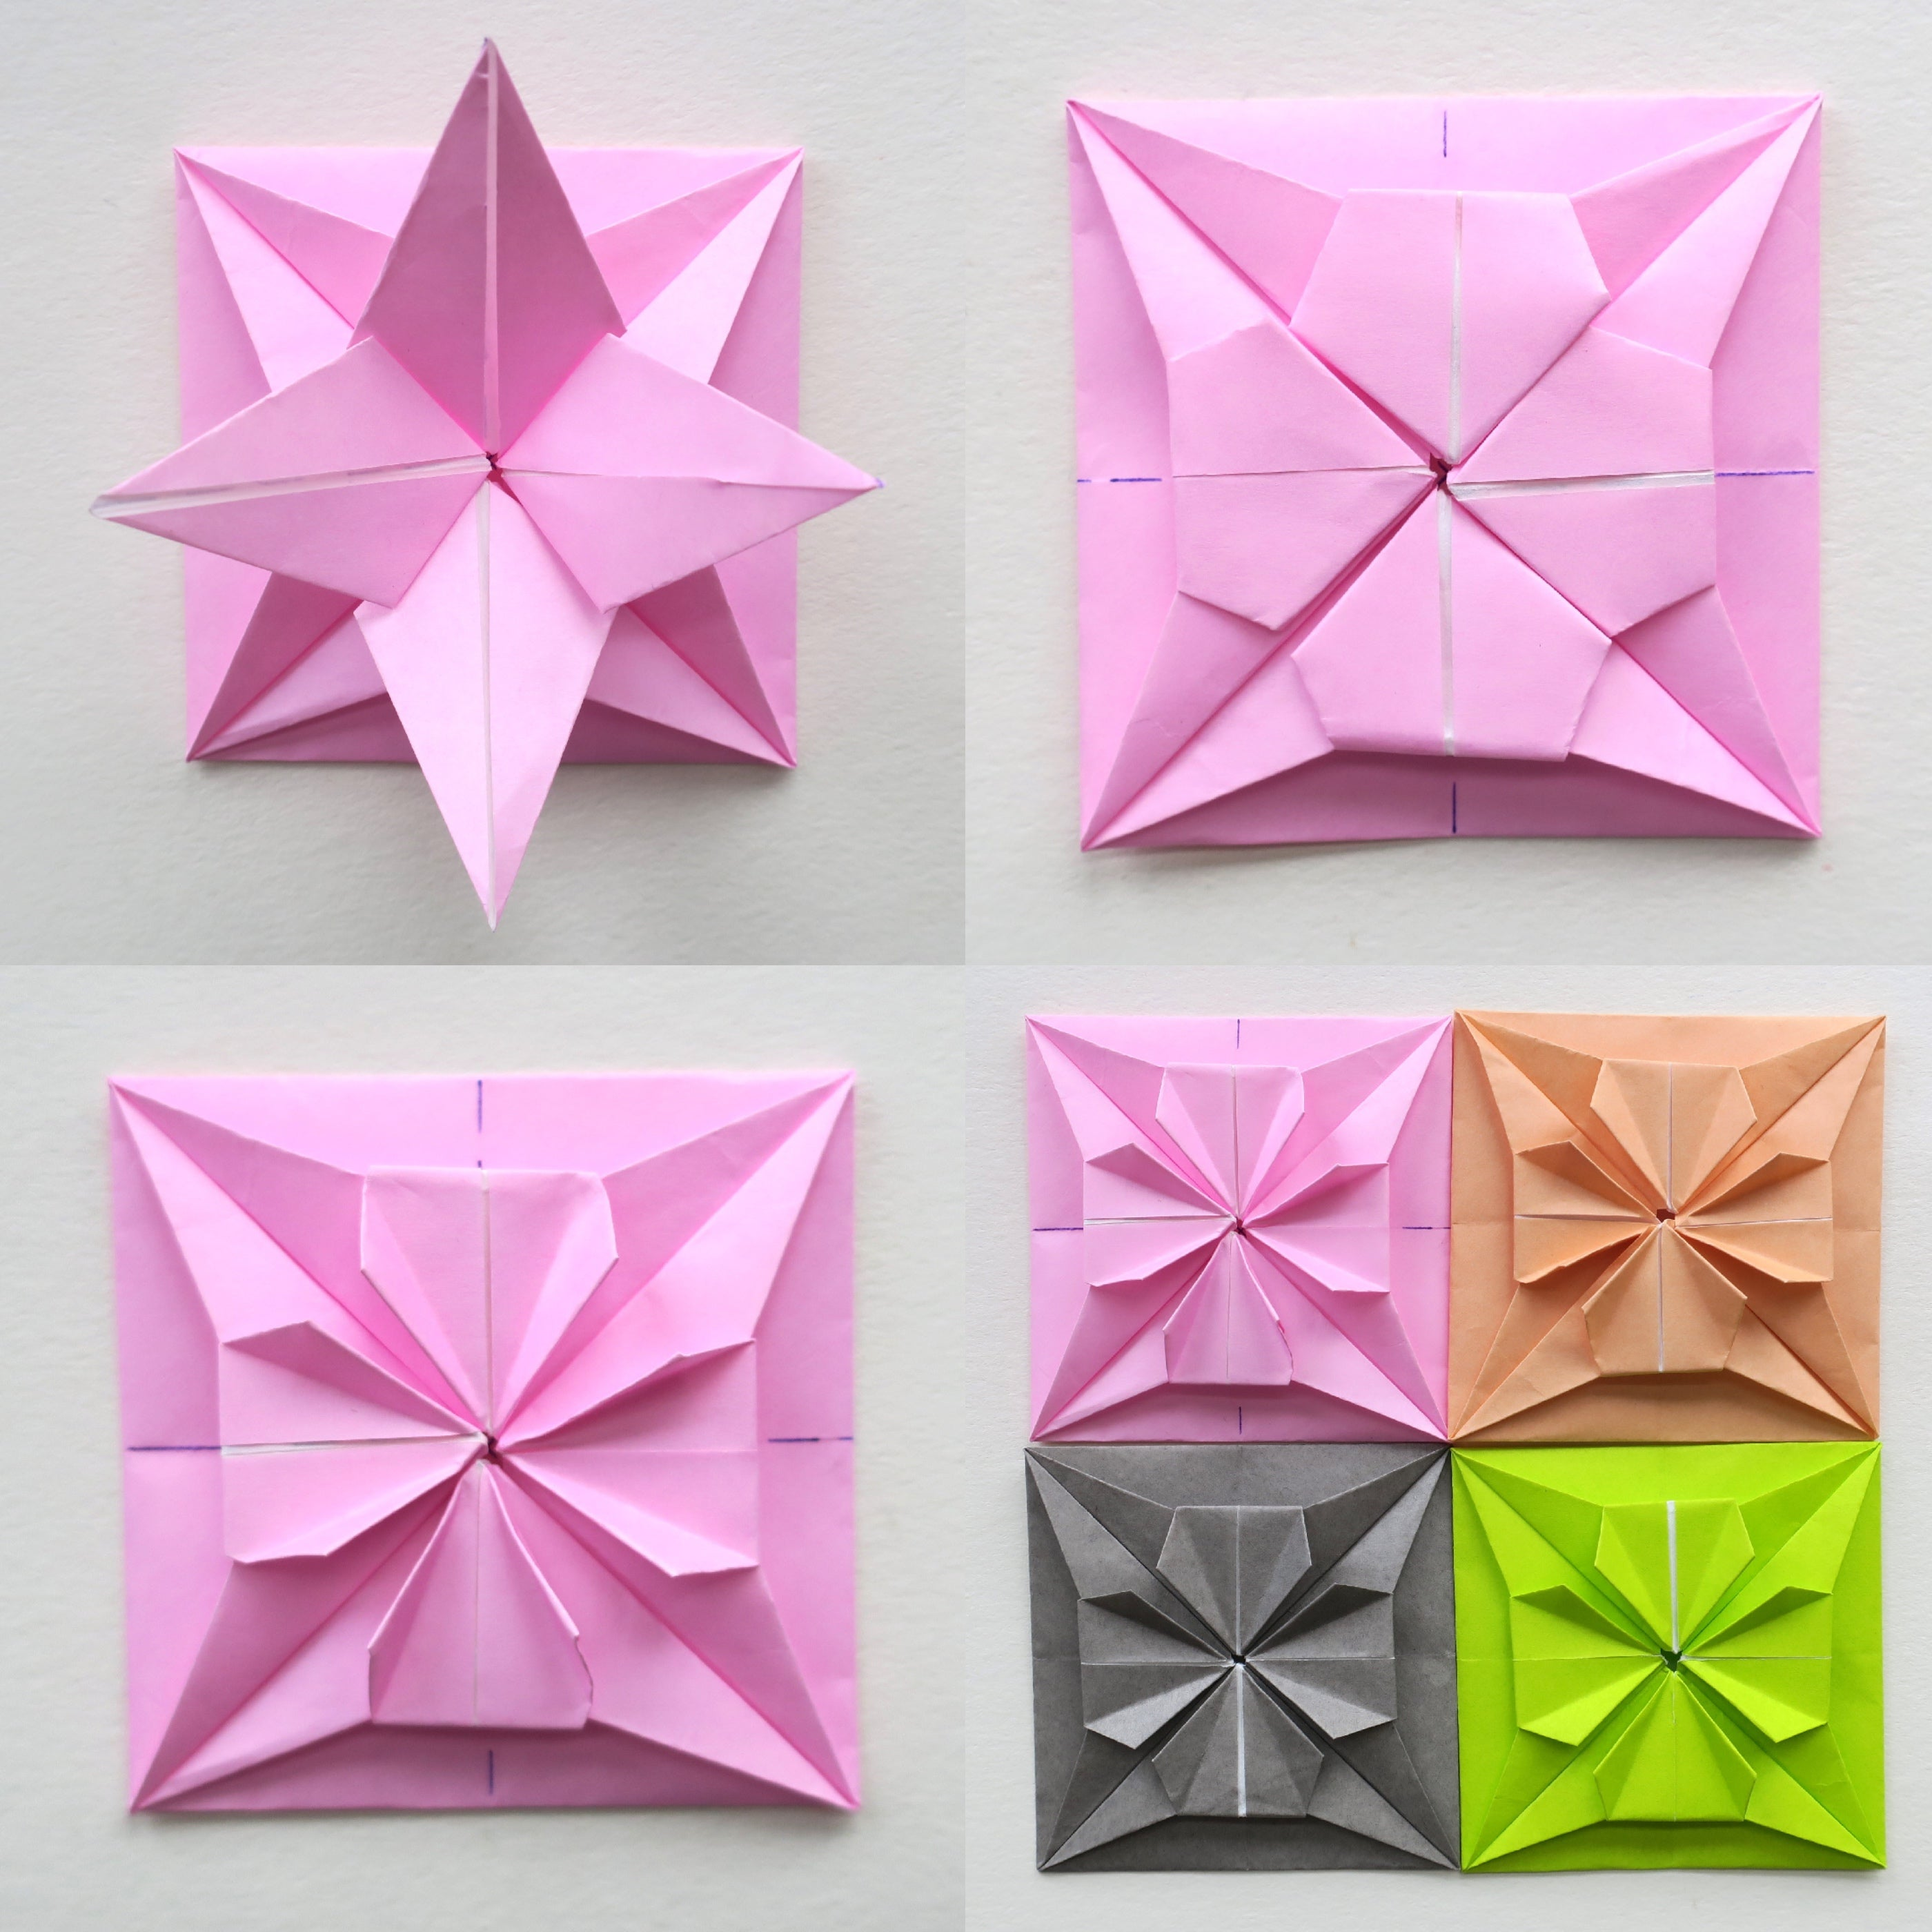 Square Origami Candy Box Instructions - Paper Kawaii | 2800x2800